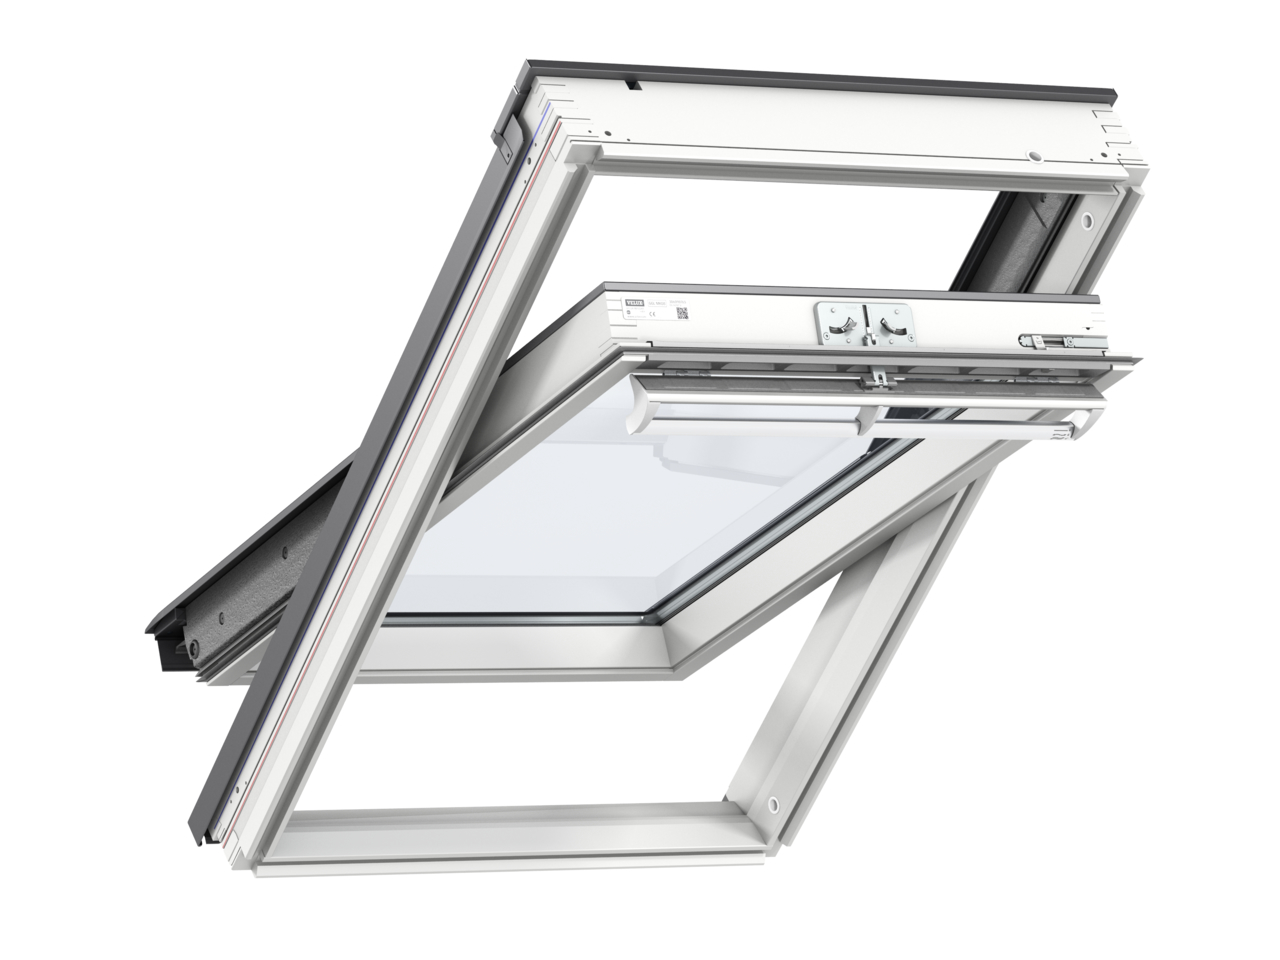 Velux GGL MK04 780 x 980mm Centre Pivot 70QPane Roof Window - White Painted